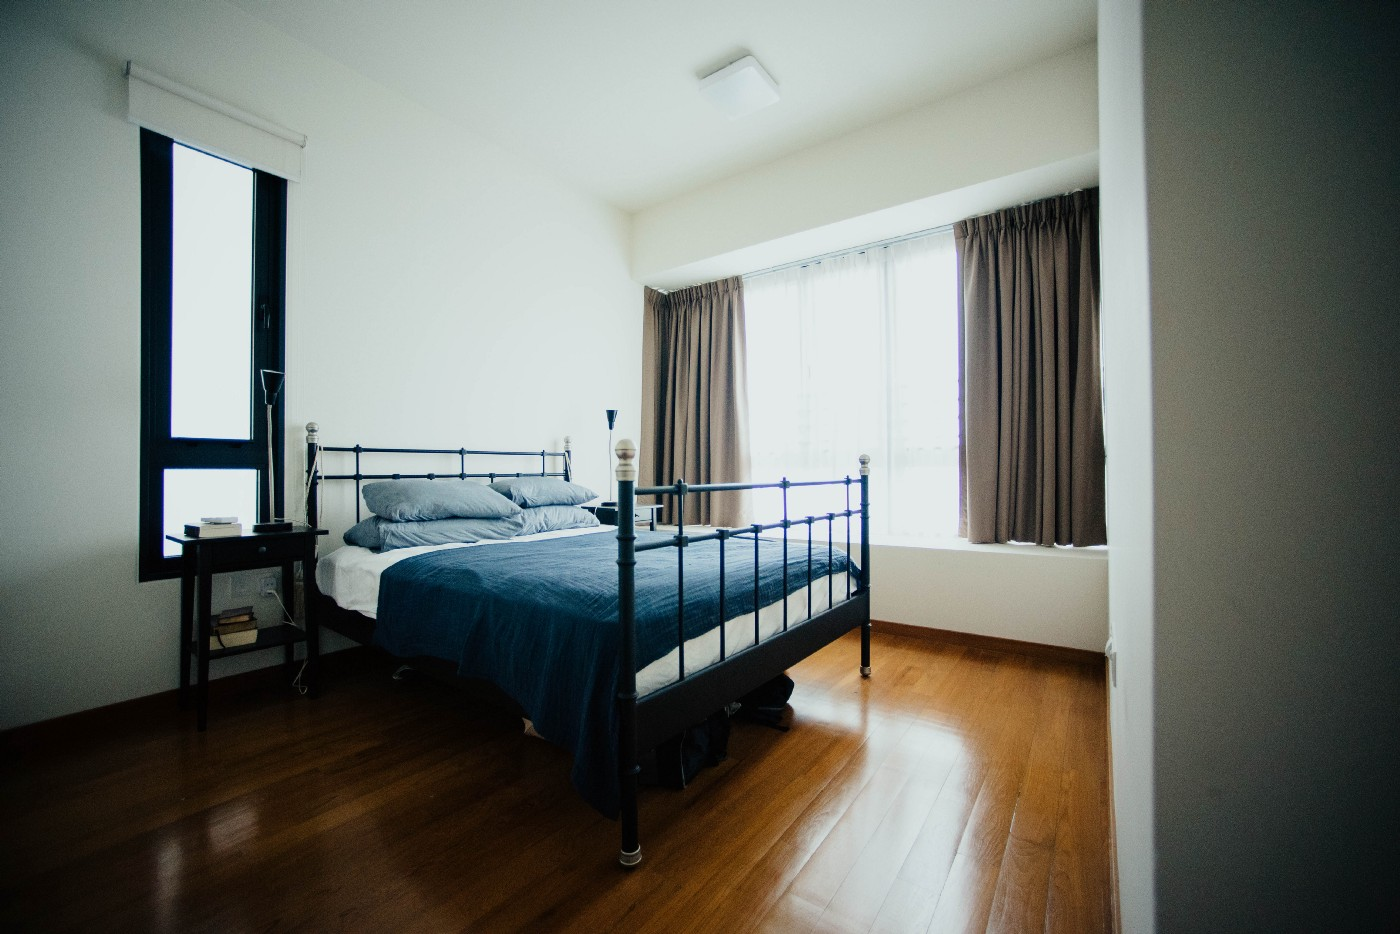 Made queen-sized bed with wrought iron bed frame. sits in clean, sparse bedroom with shiny wood floors and tall windows with sun shining into room. A night stand sits to the right in front of one of the windows.